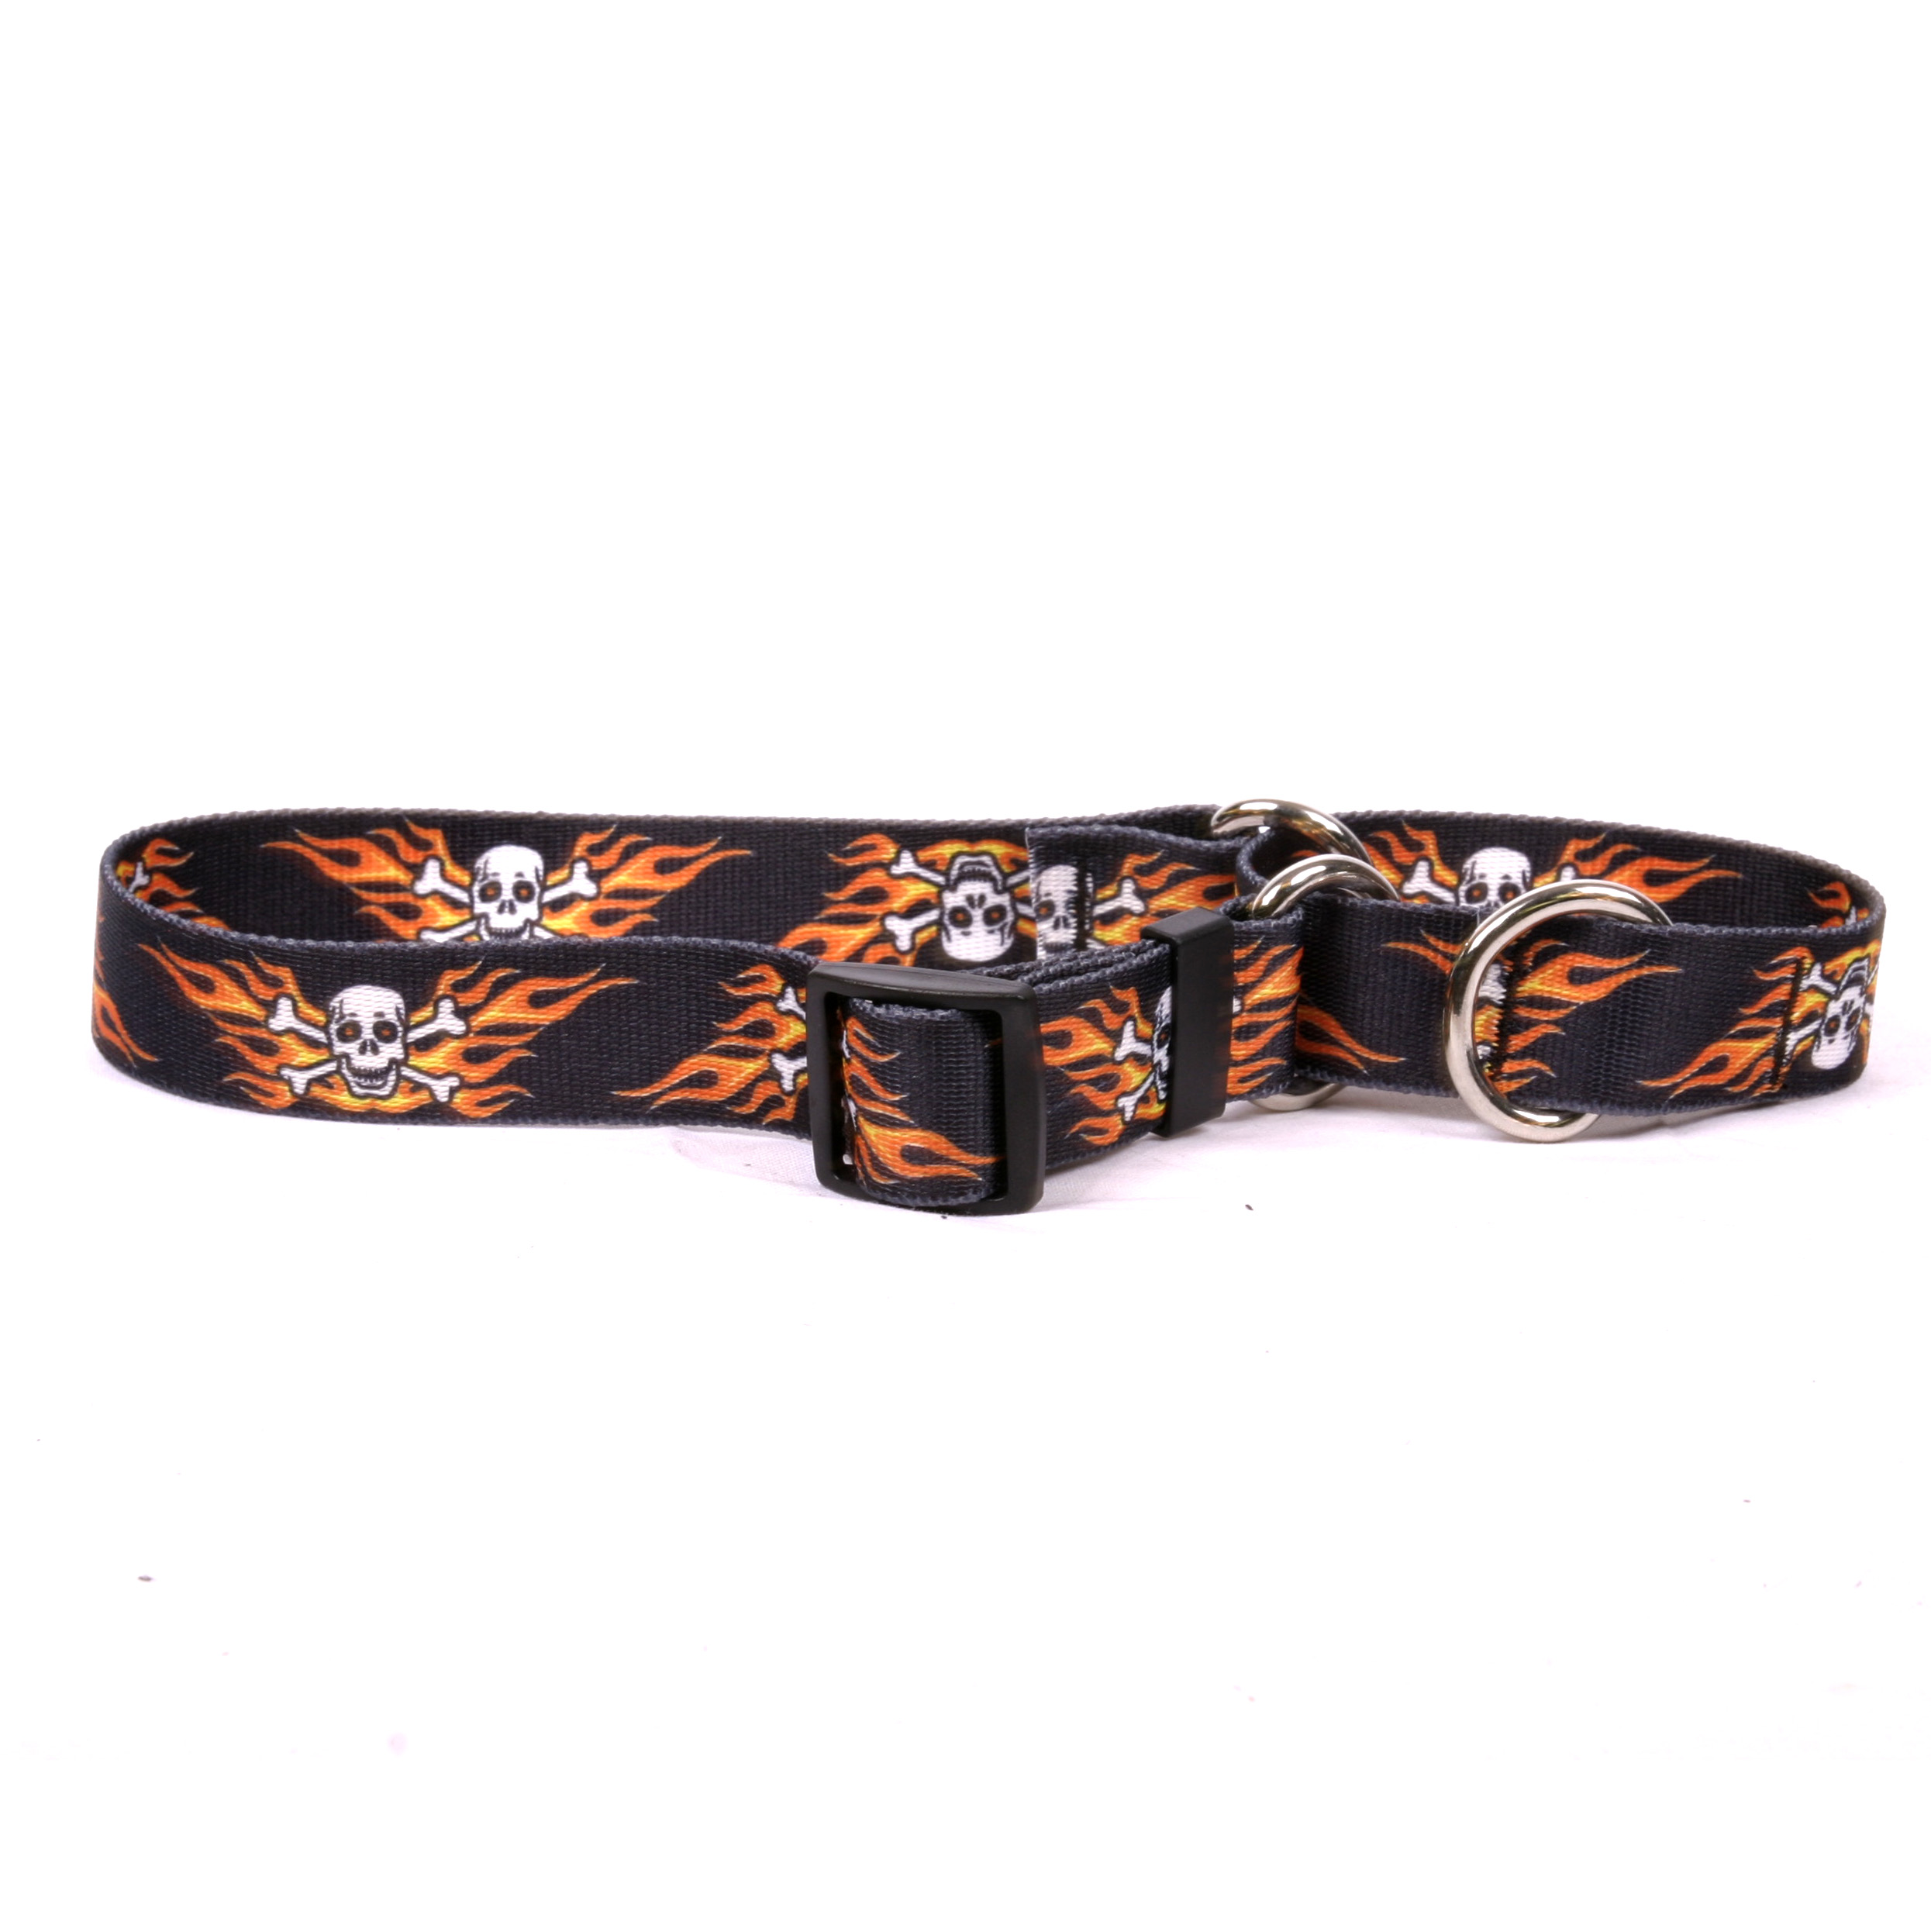 Flaming Skulls Martingale Collar